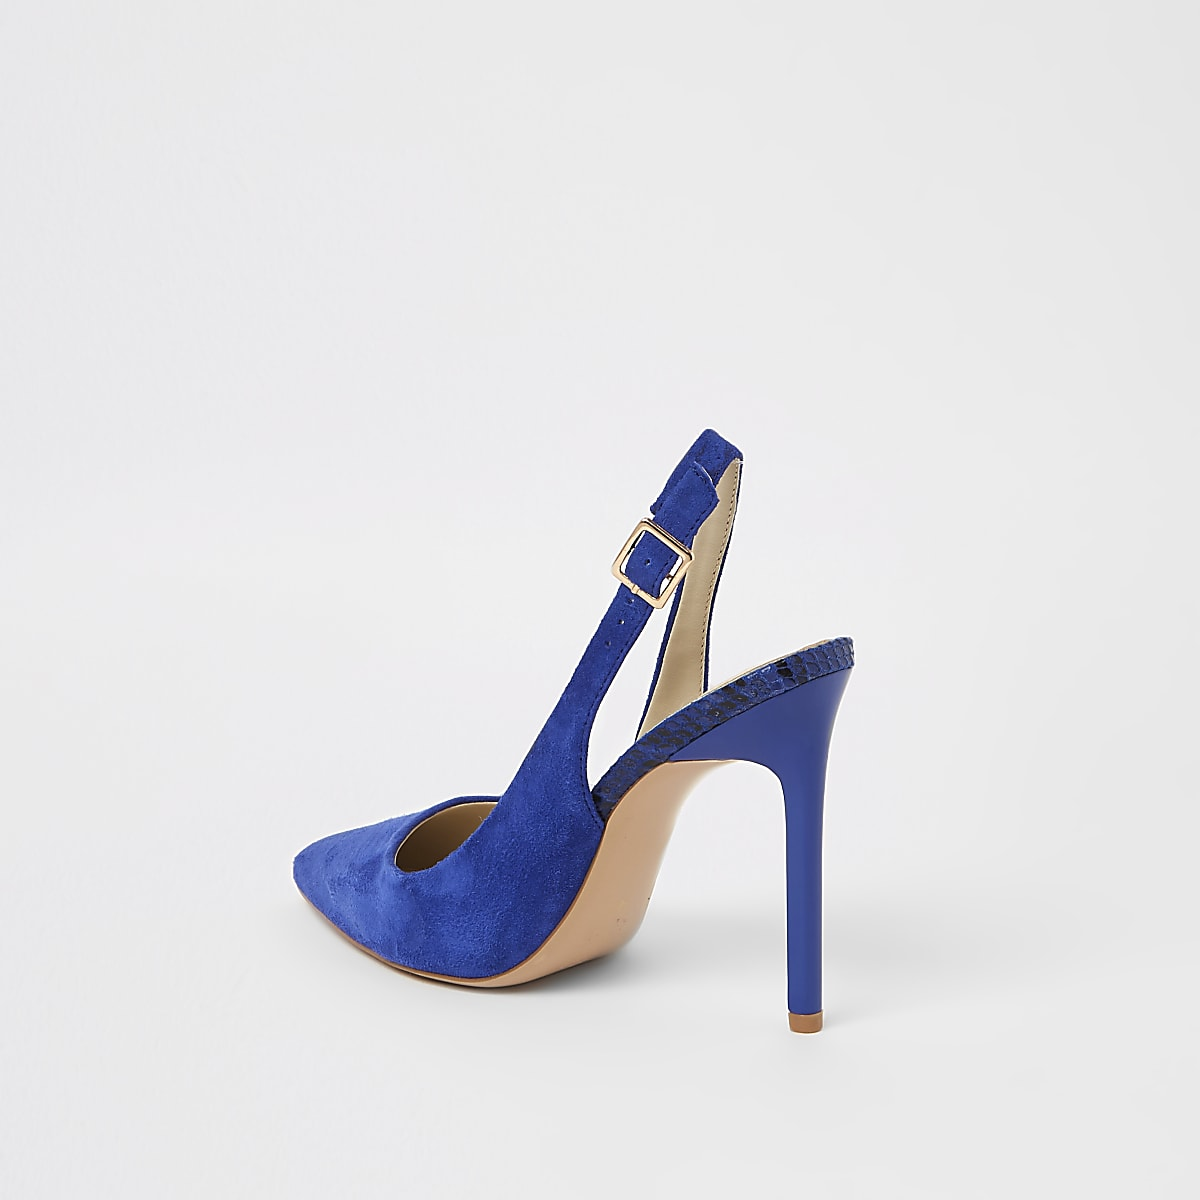 a687a40cb08 Blue pointed toe slingback court shoes - Shoes - Shoes   Boots - women